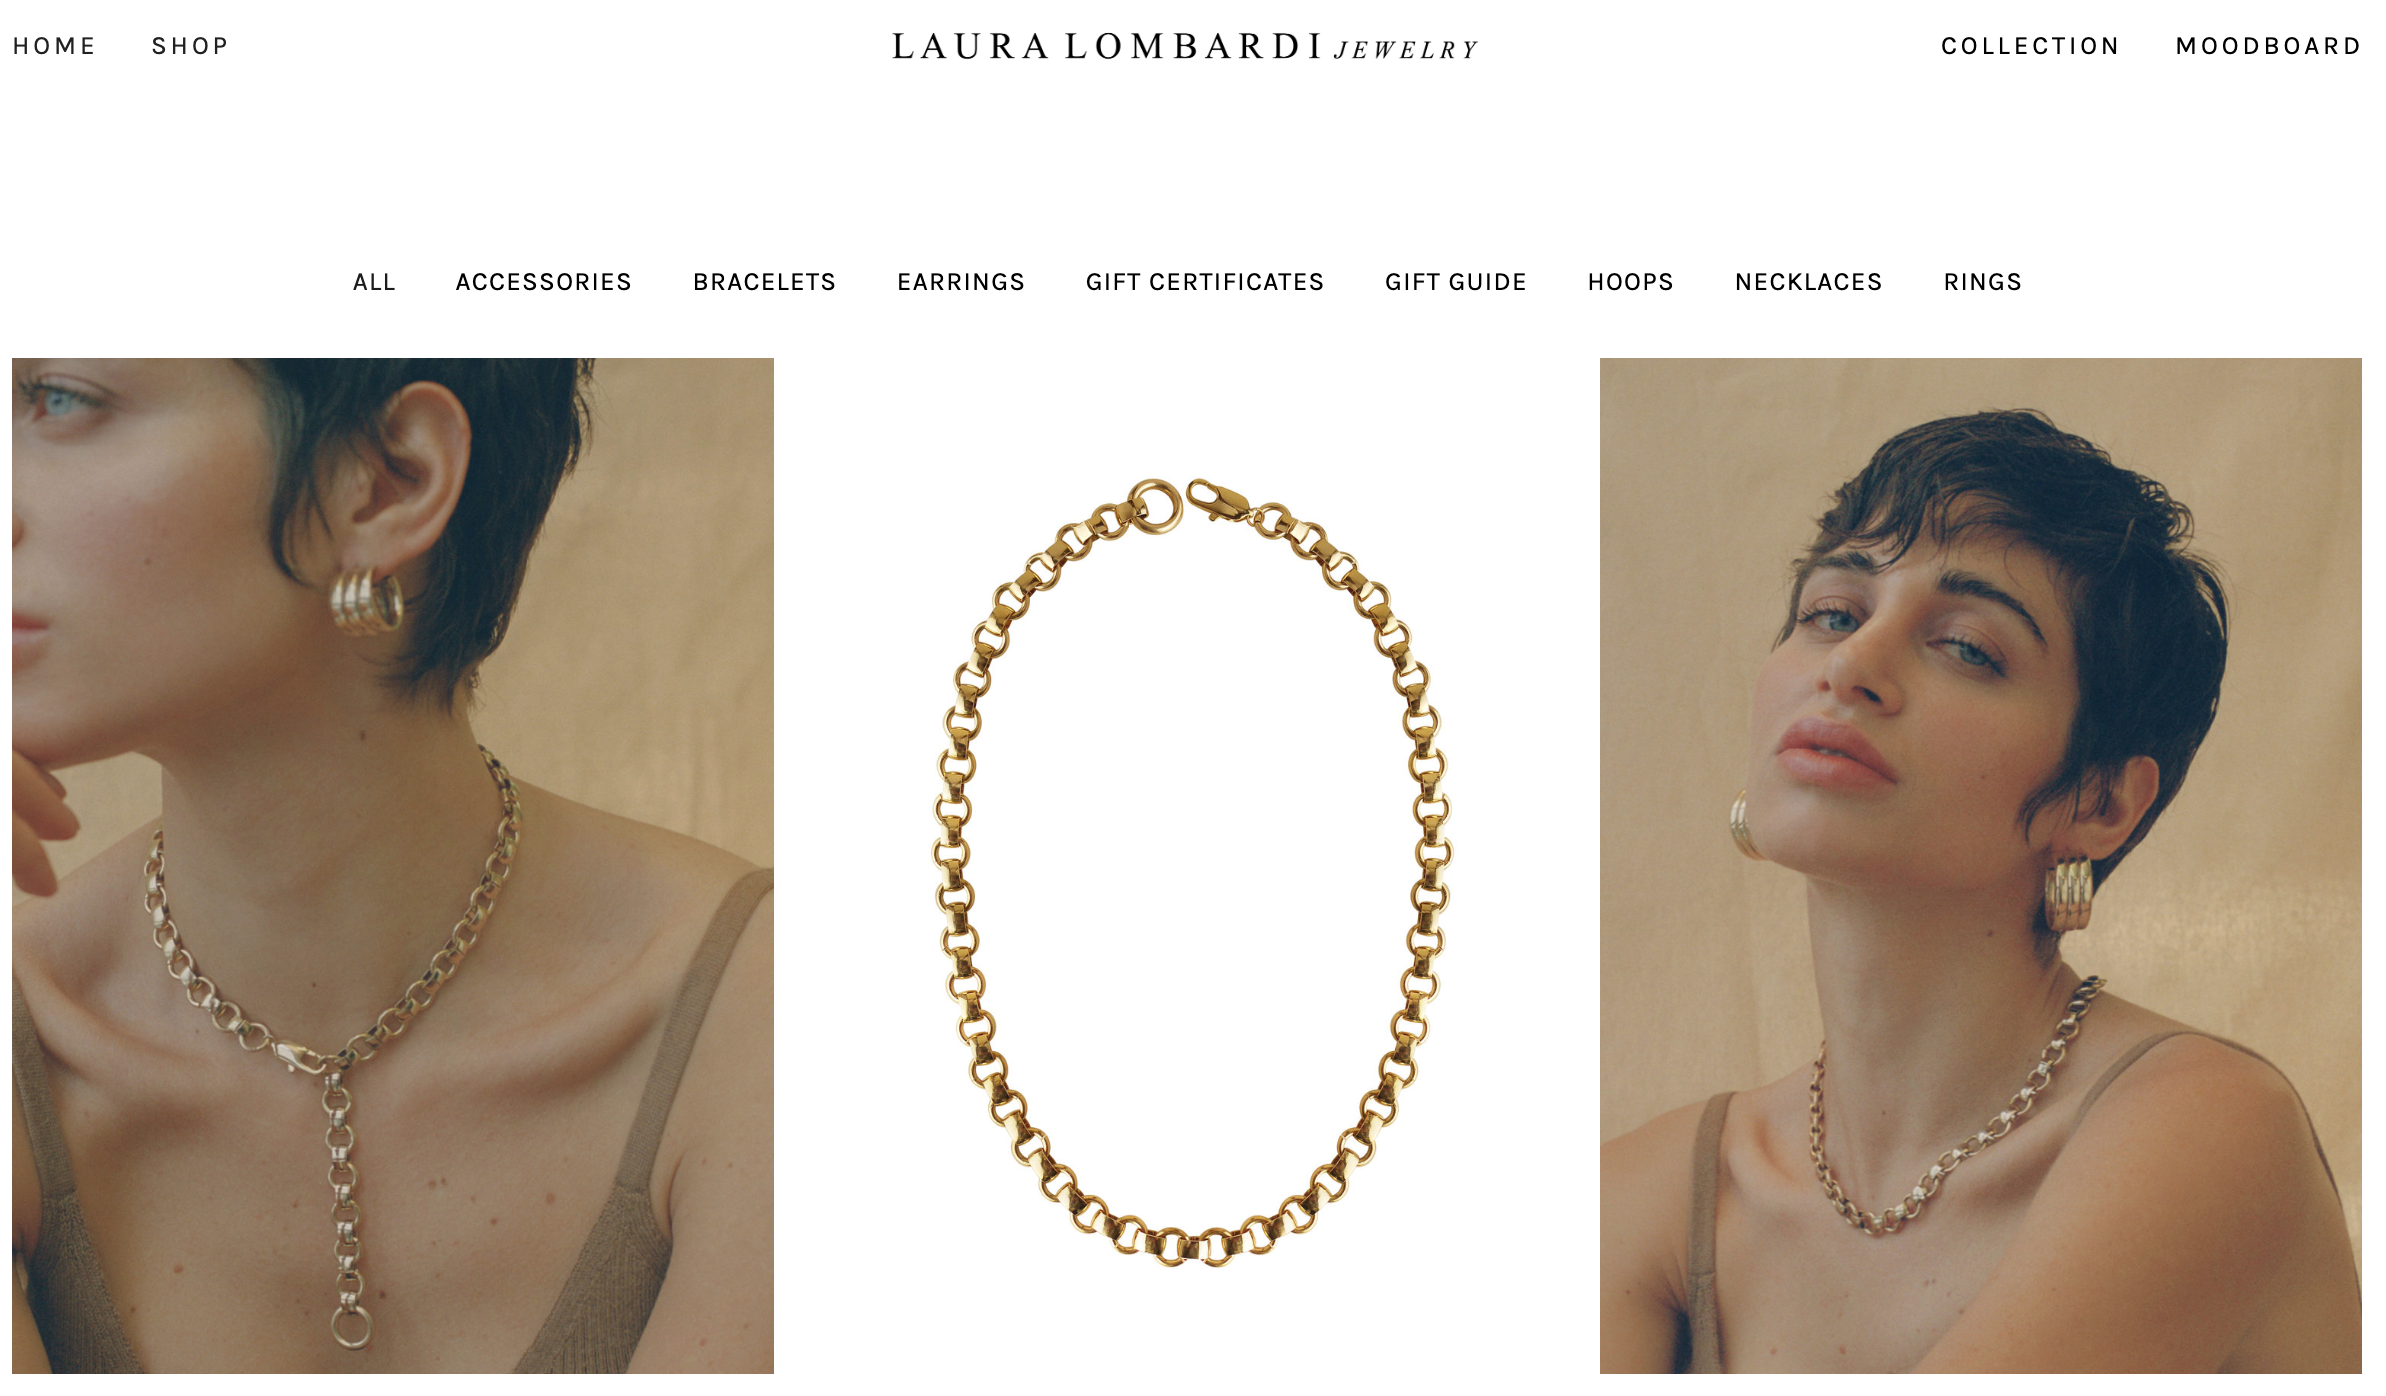 Laura Lombardi - Laura Lombardi's jewelry is made with almost exclusively raw or recycled materials. Sustainability is at the core of her designs and nature is used an an inspiration for the narrative behind her jewelry. Shop her gold hoops or chain necklaces - both are staples in my collection.